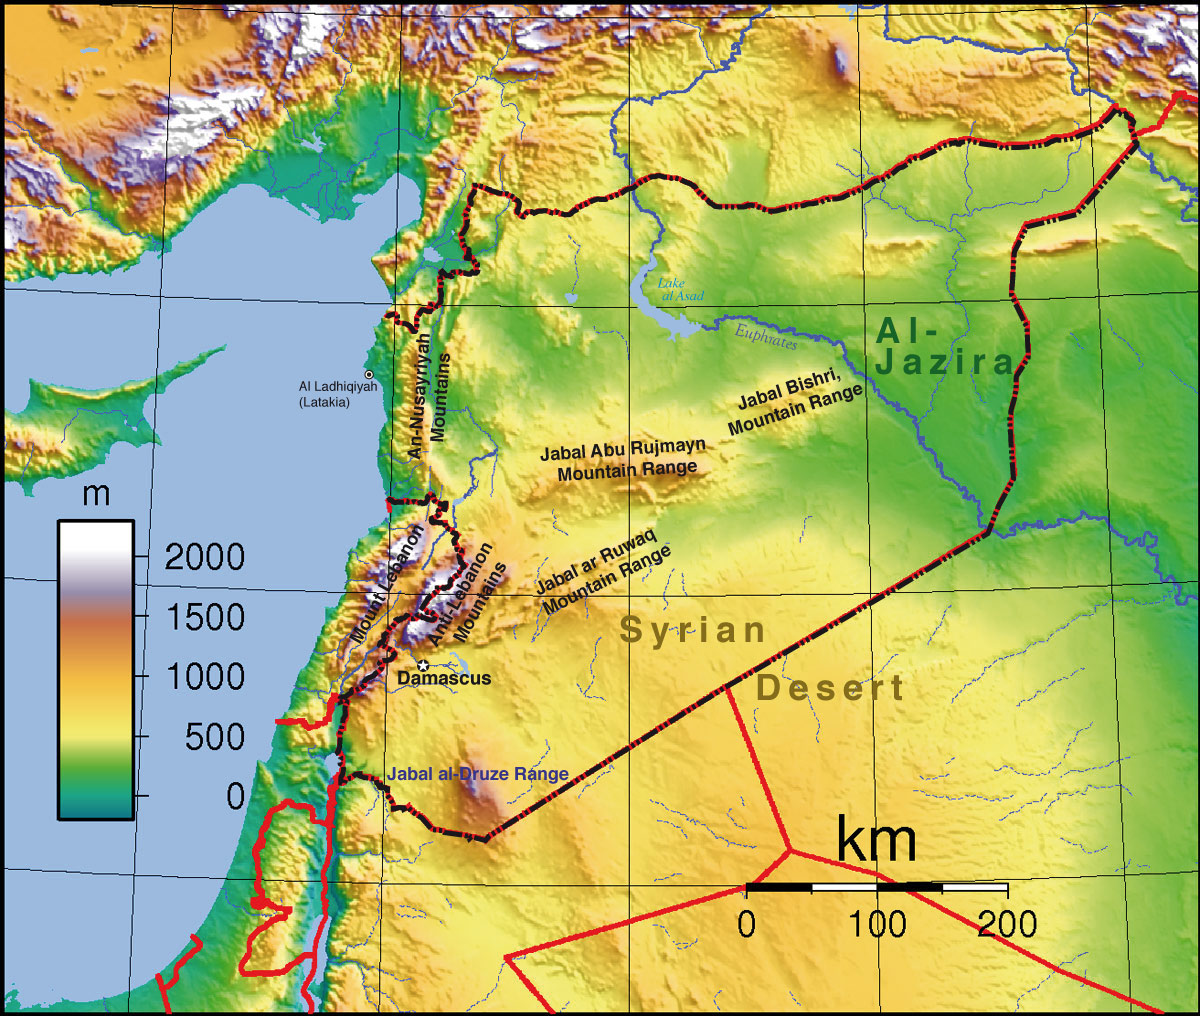 Topographic Map of Syria - Nations Online Project